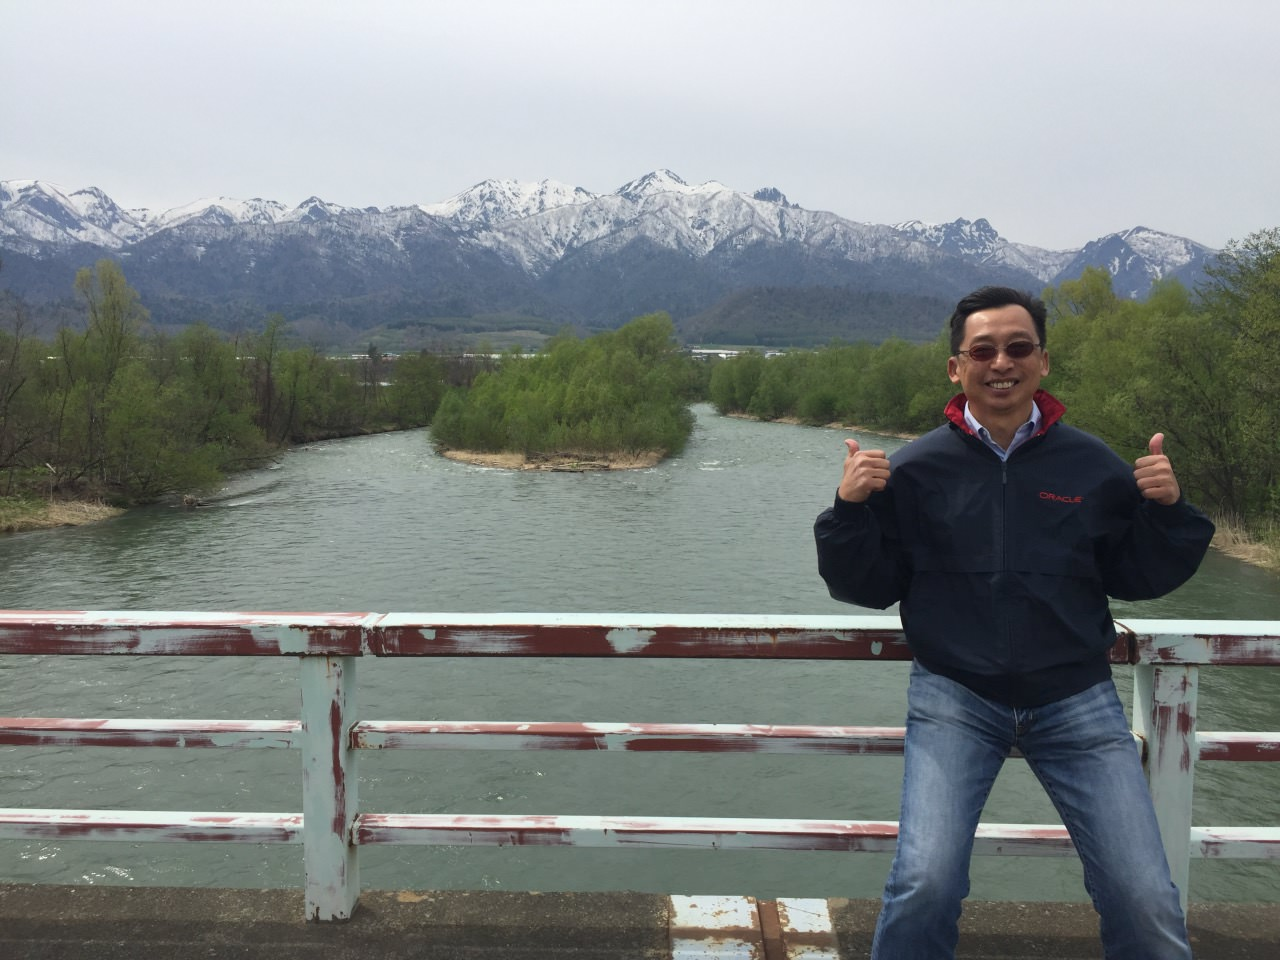 View of the river, plain and the snow capped mountains in clear blue sky is simply beautiful.